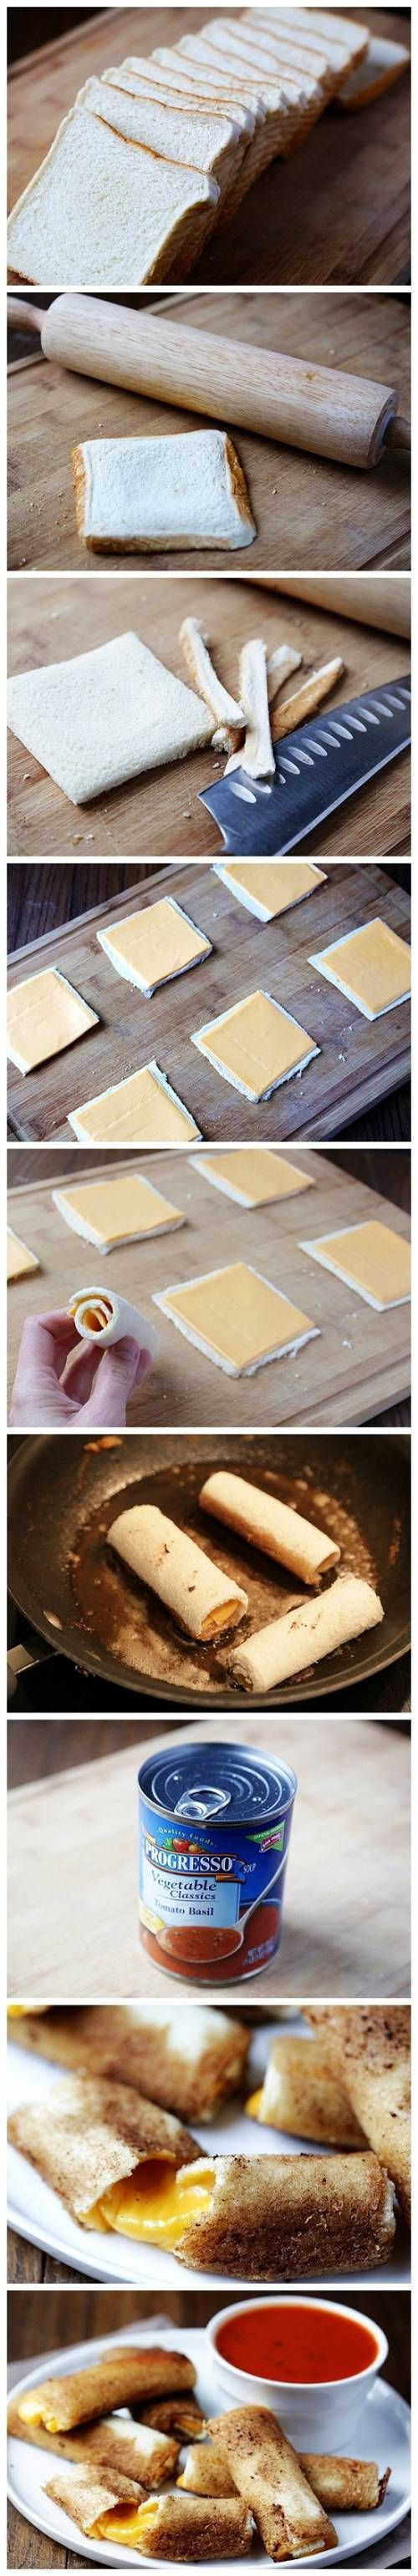 14 Creative Food Hacks That Will Change The Way You CookPositiveMed   Stay Healthy. Live Happy